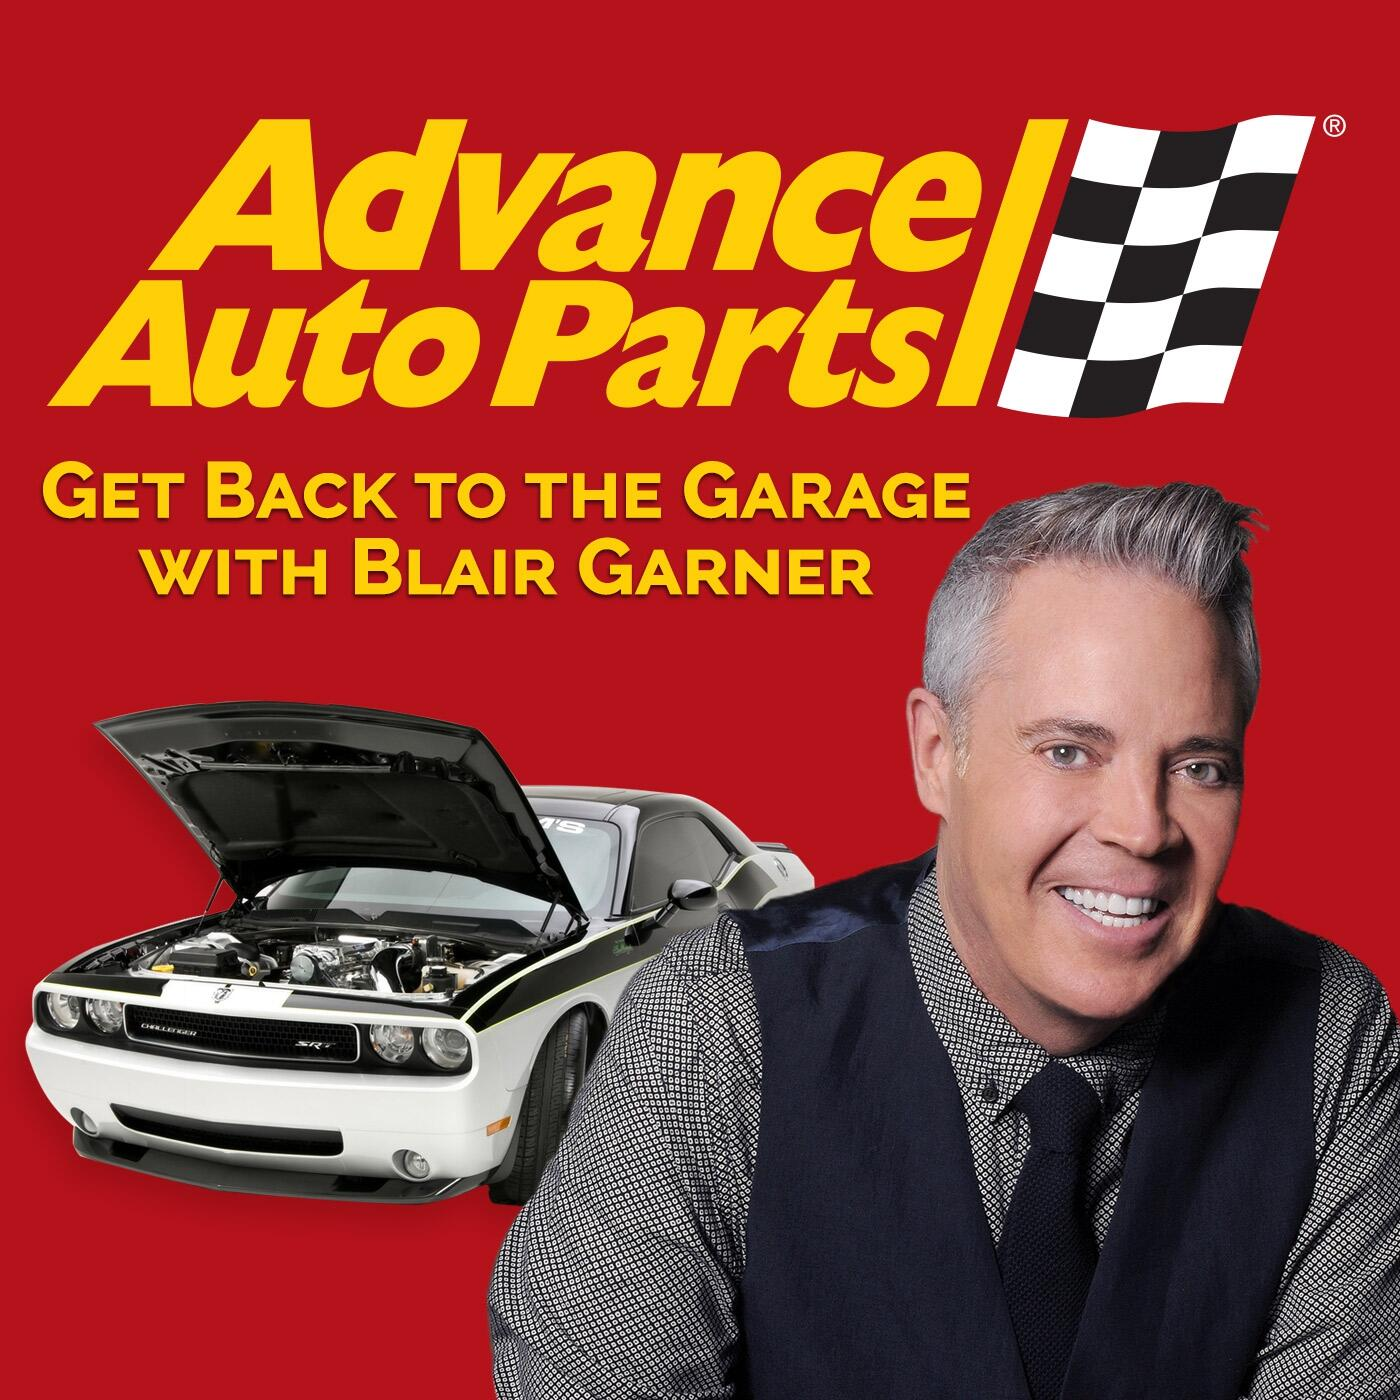 Get Back to the Garage with Blair Garner